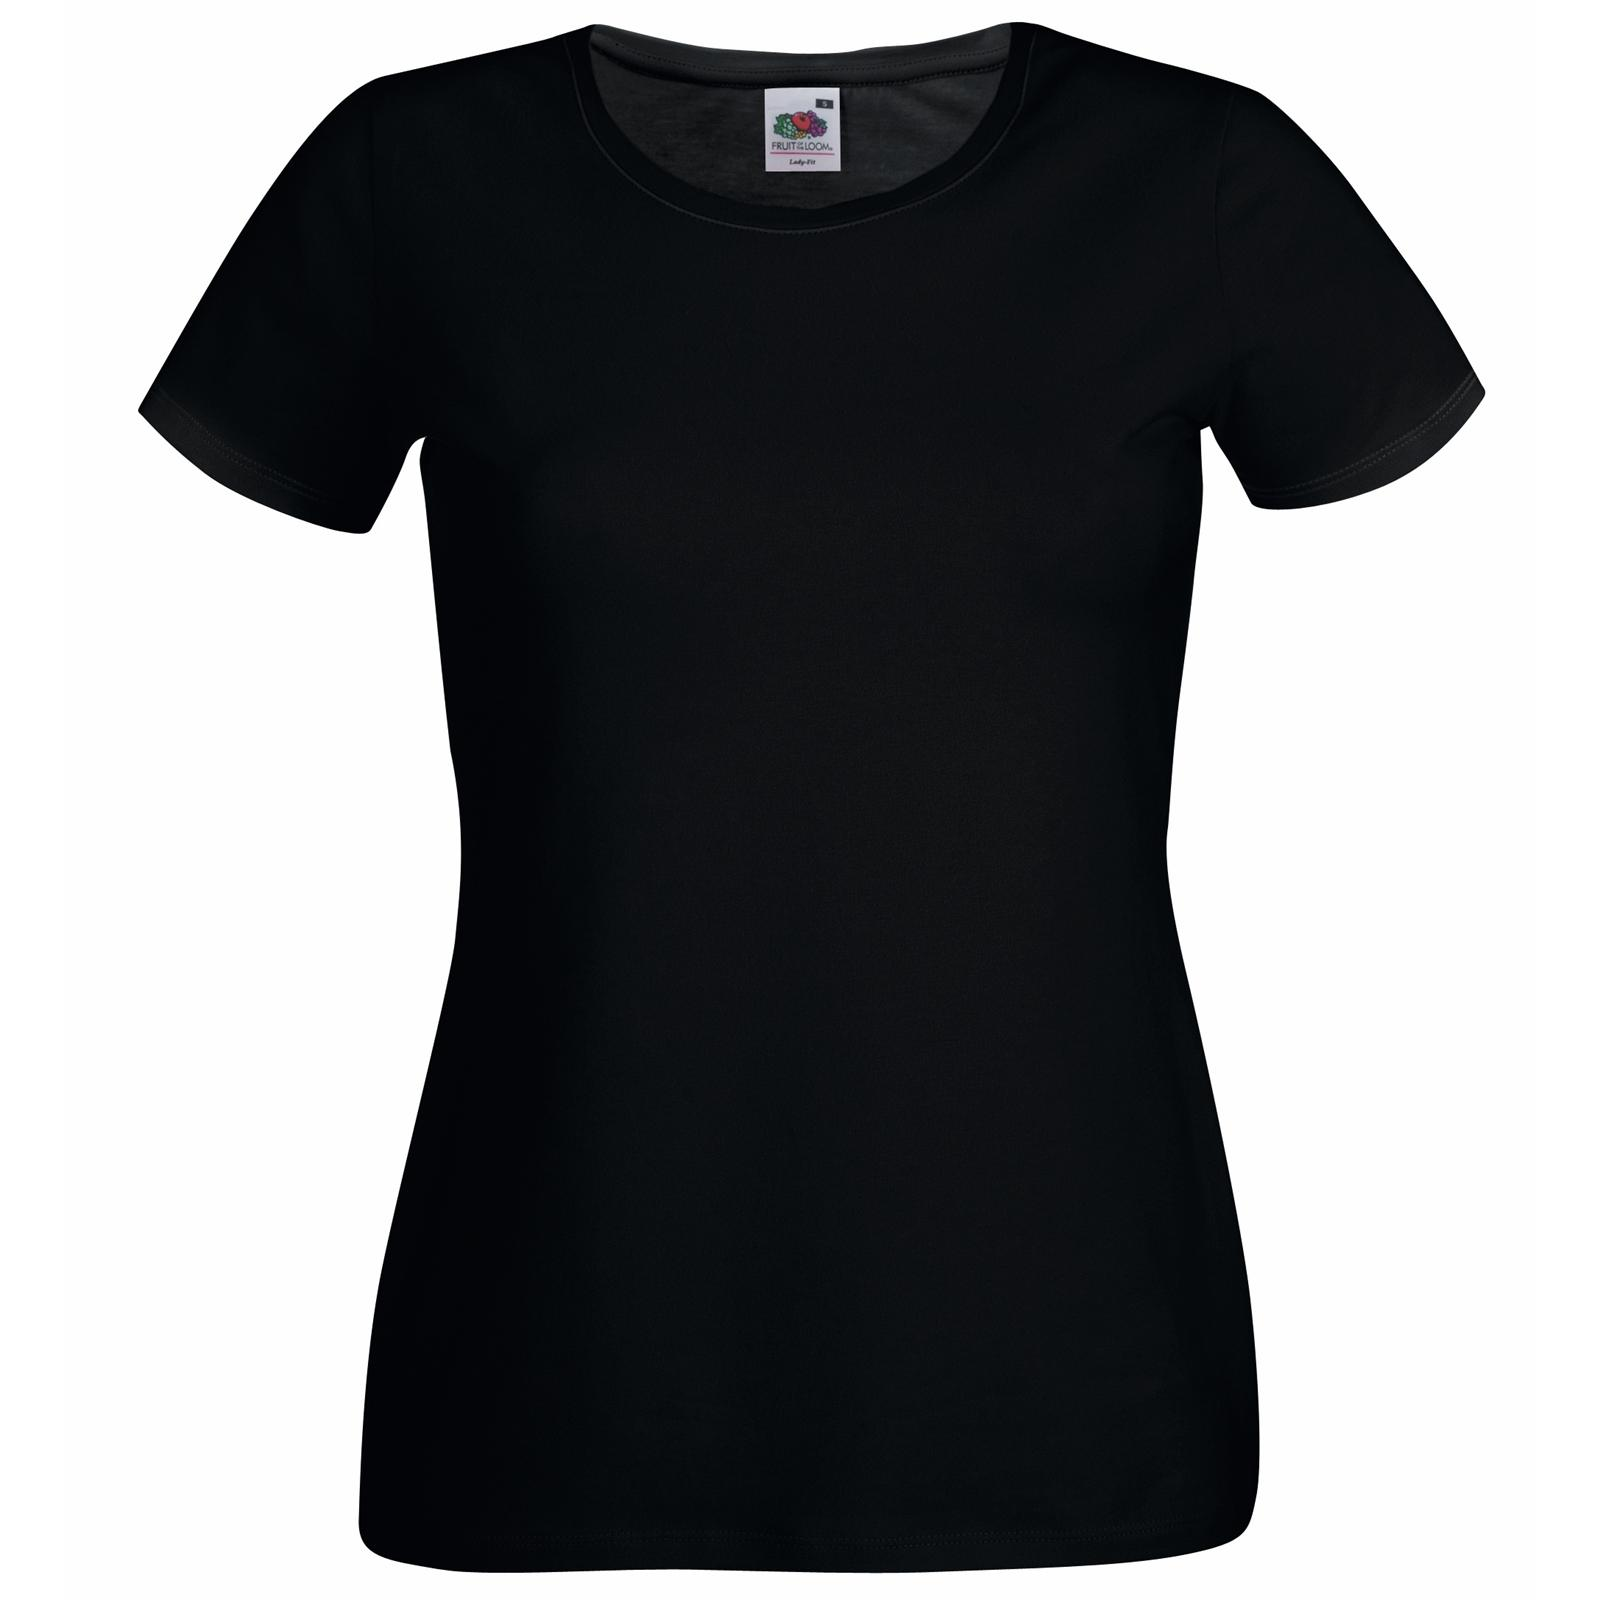 New fruit of the loom womens lady fit crew neck t shirt 7 Womens black tee shirt